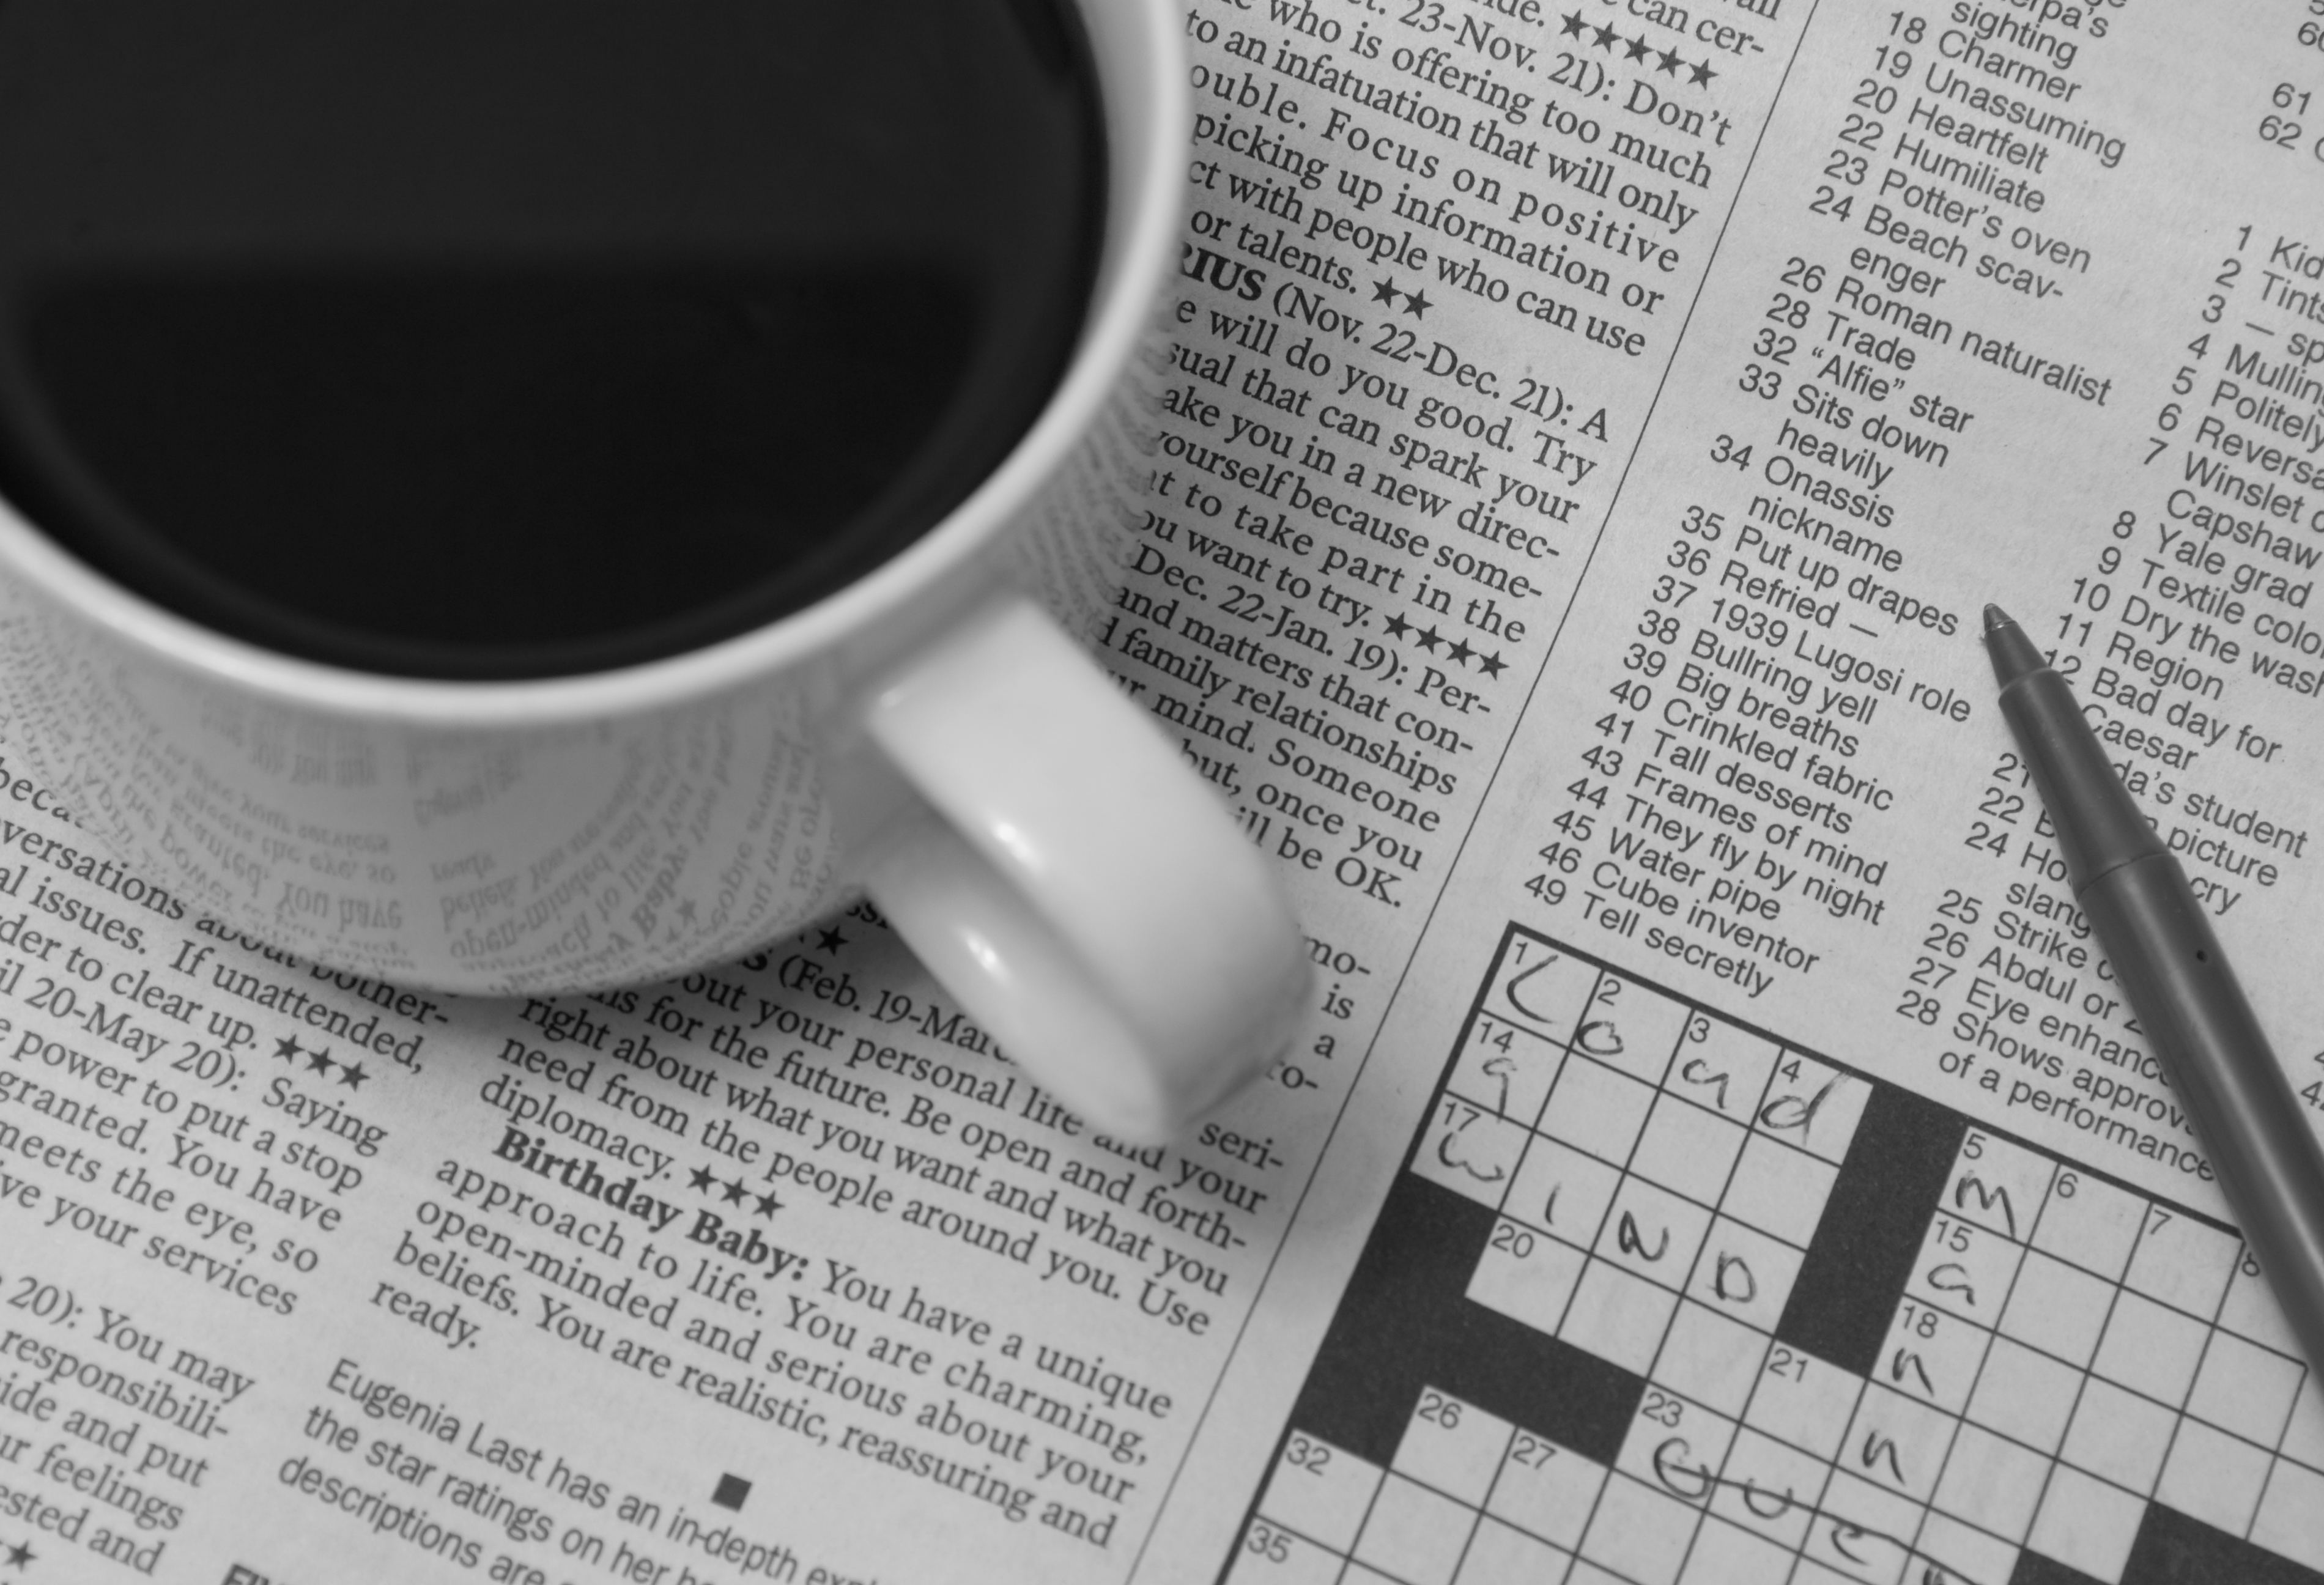 Coffee was made and the crossword was done. (Image by Randy Auschrat (CC BY-ND 2.0))